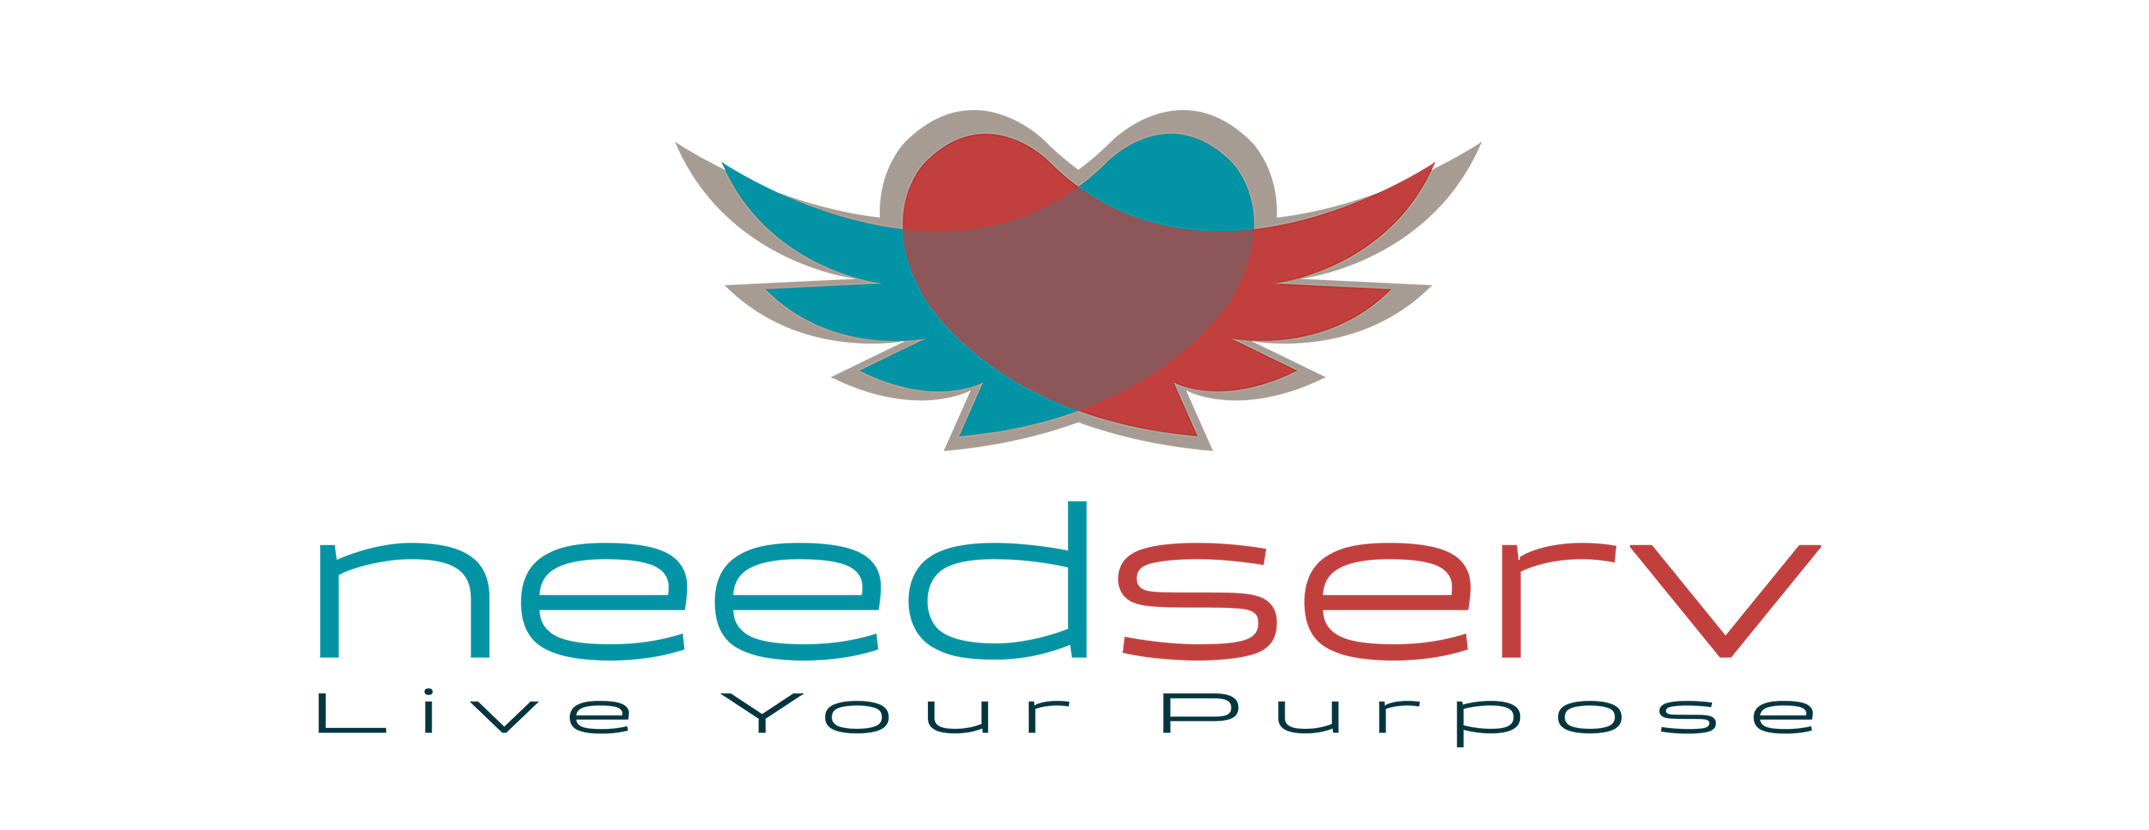 Needserv is The Service Arm of The Jesus Alliance